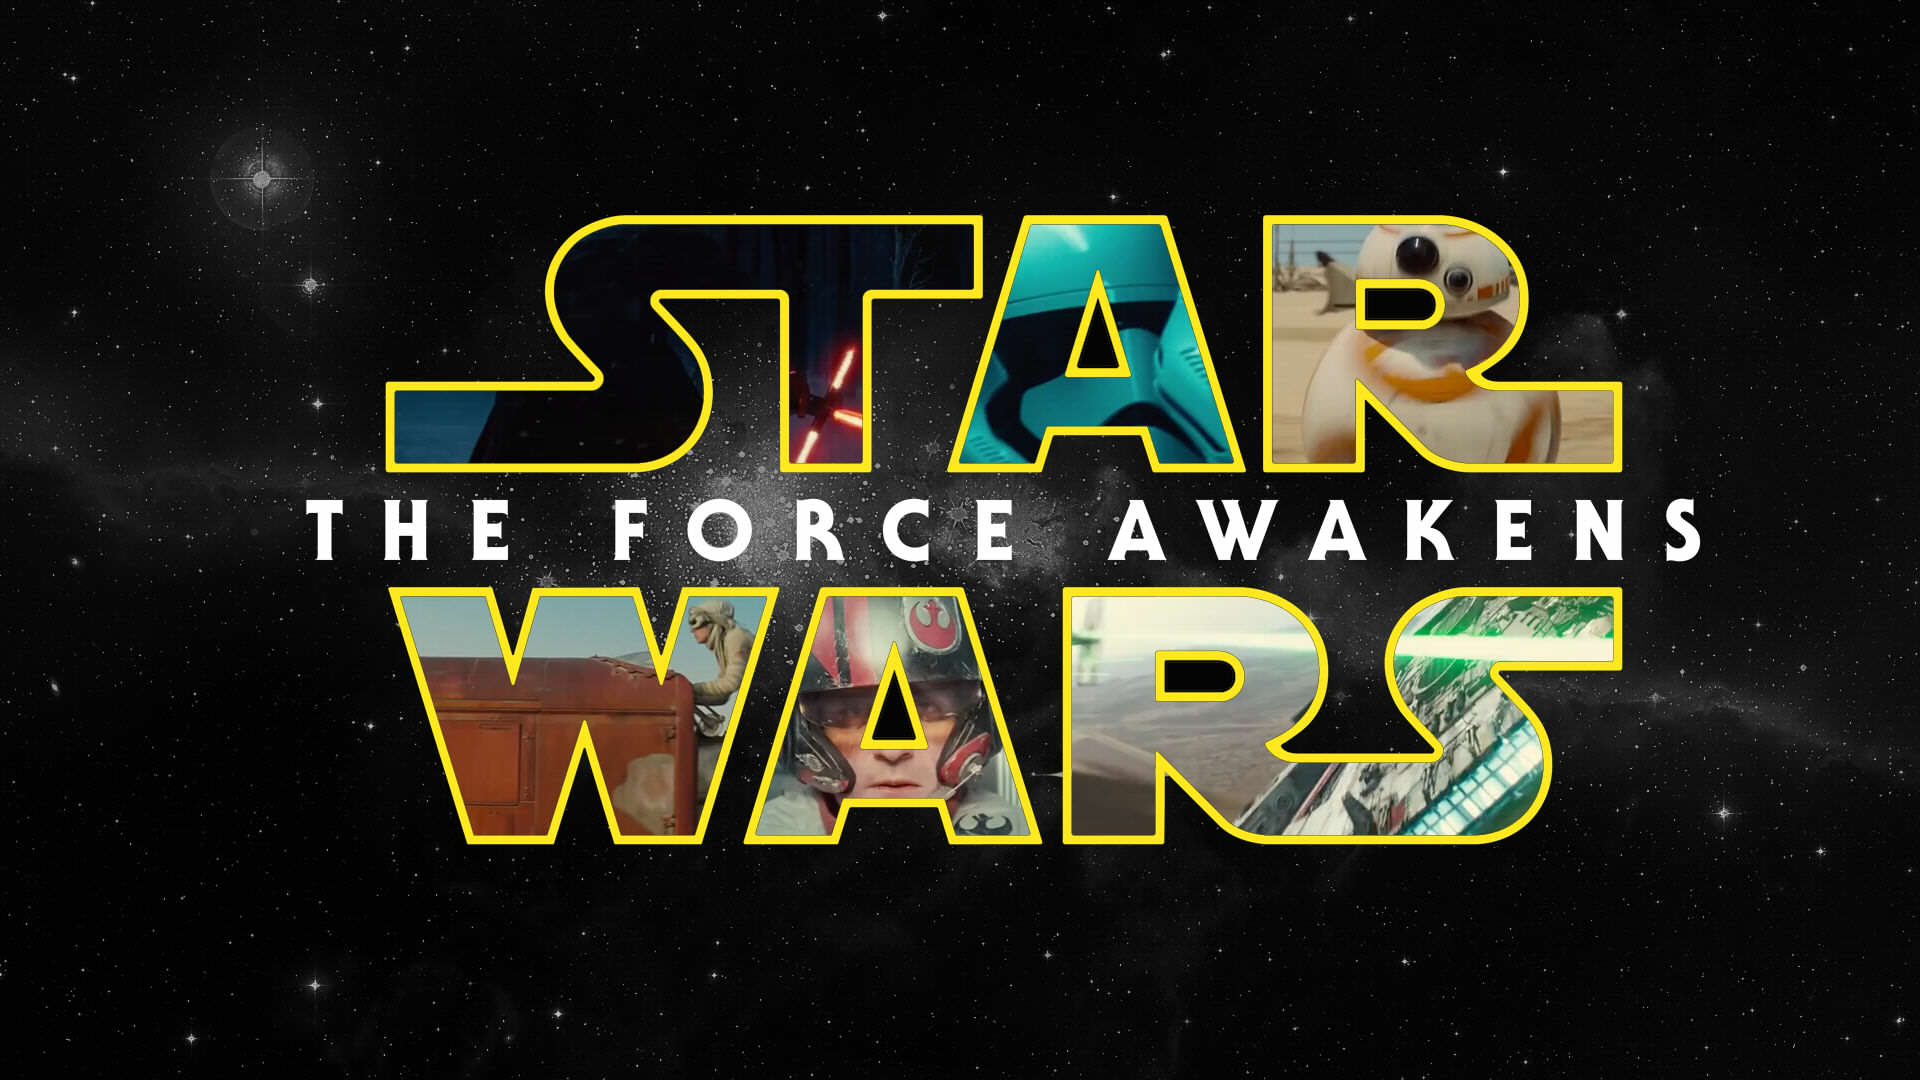 Star Wars 7 Logo Wallpaper Disney Are Planning A Lot More Star Wars In The Future